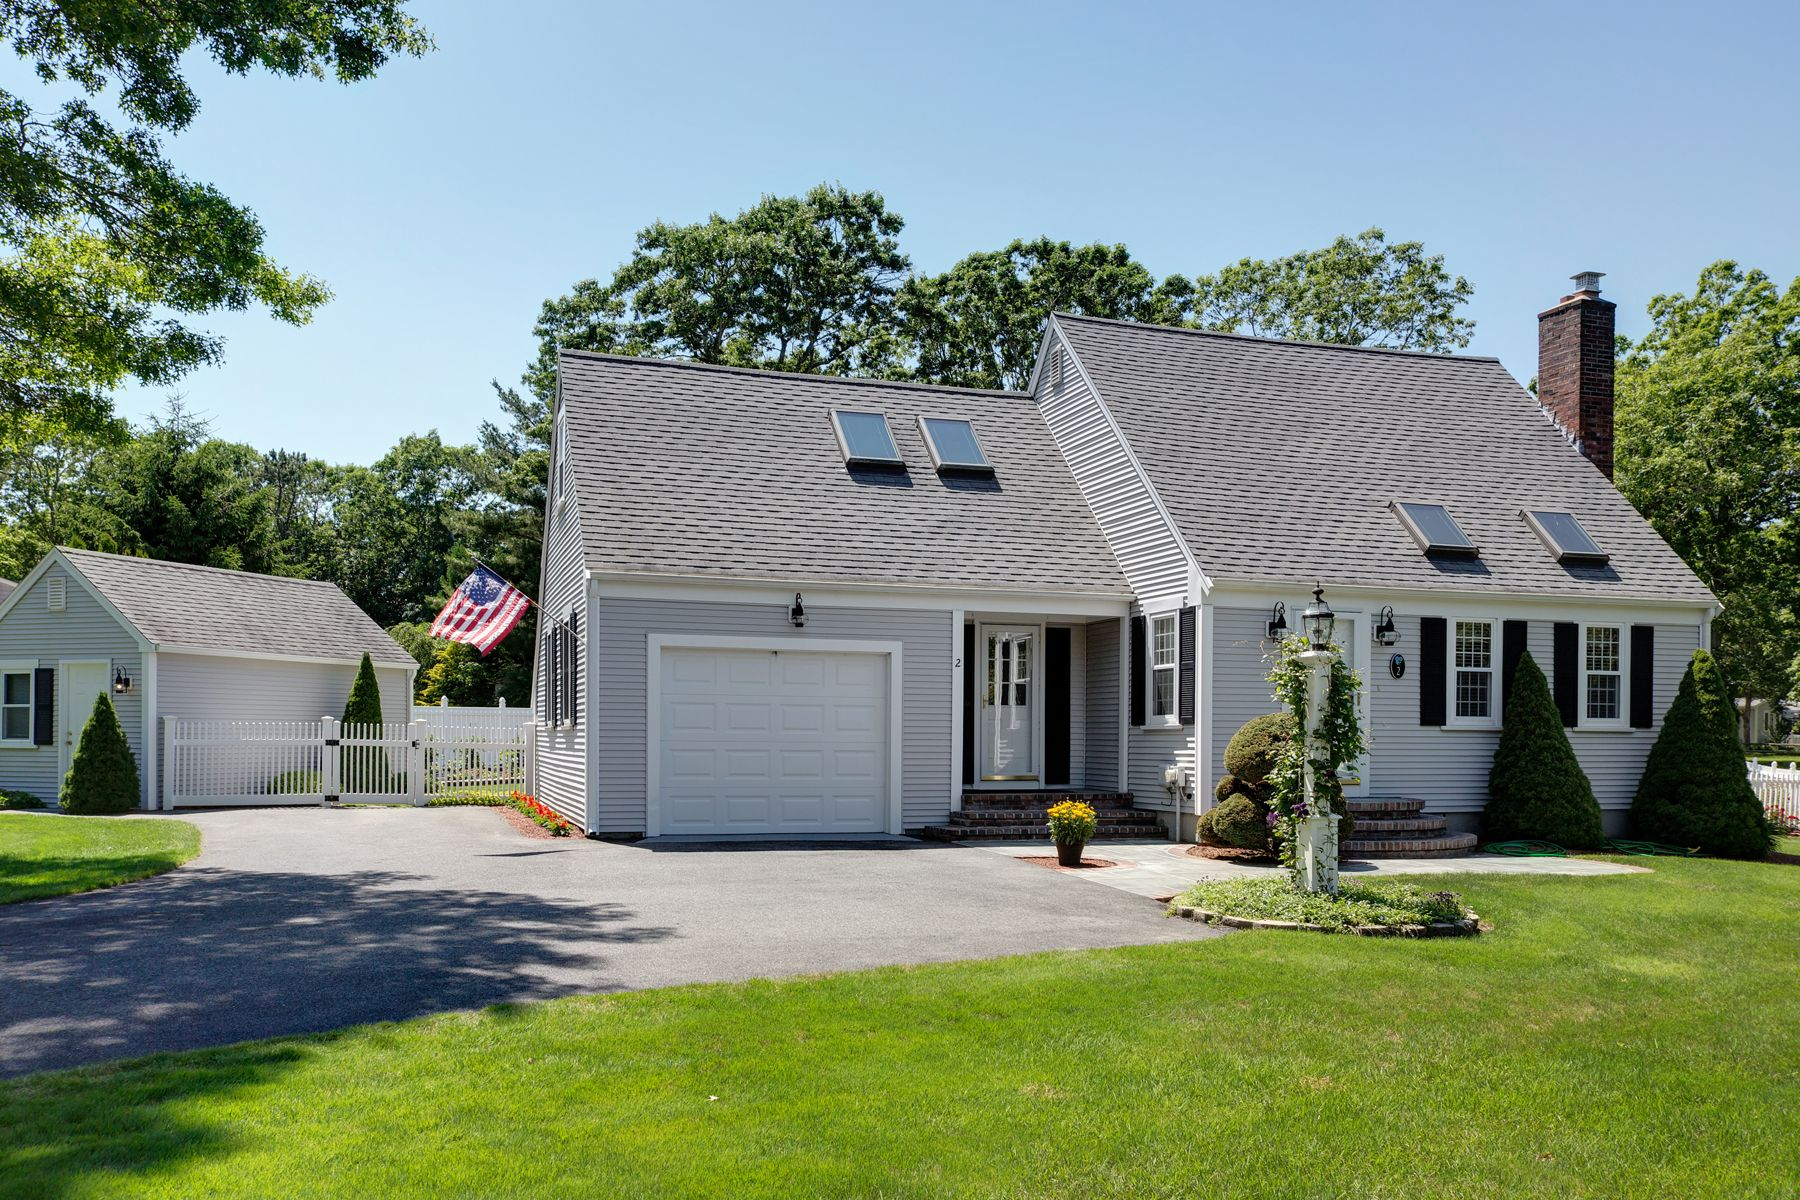 Single Family Homes for Sale at Exquisite Sunny Cape 2 Tabor Road Forestdale, Massachusetts 02644 United States